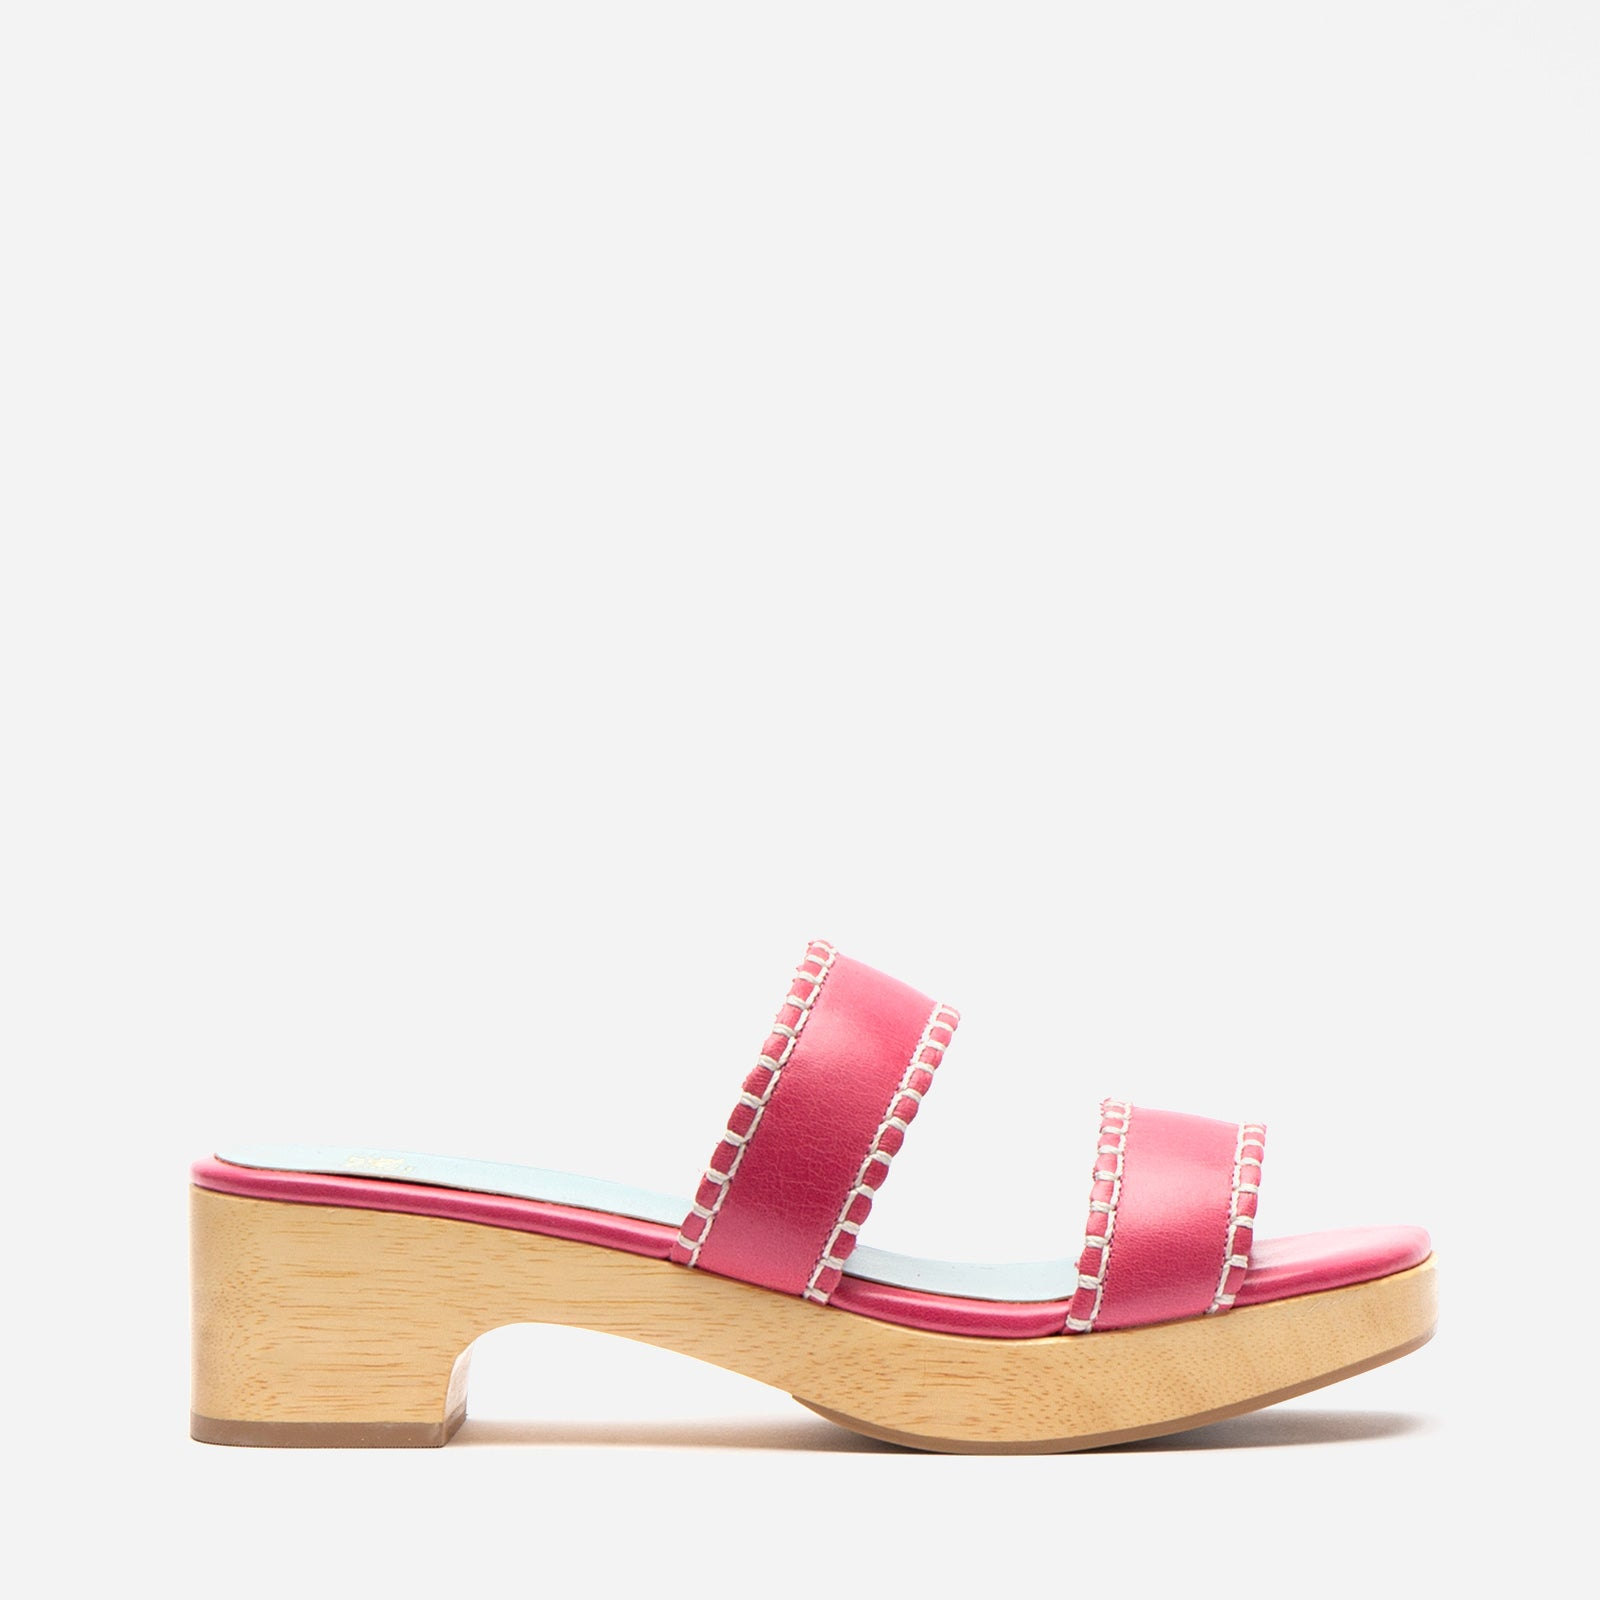 Wooden Slide Sandal Naplak Leather Pink